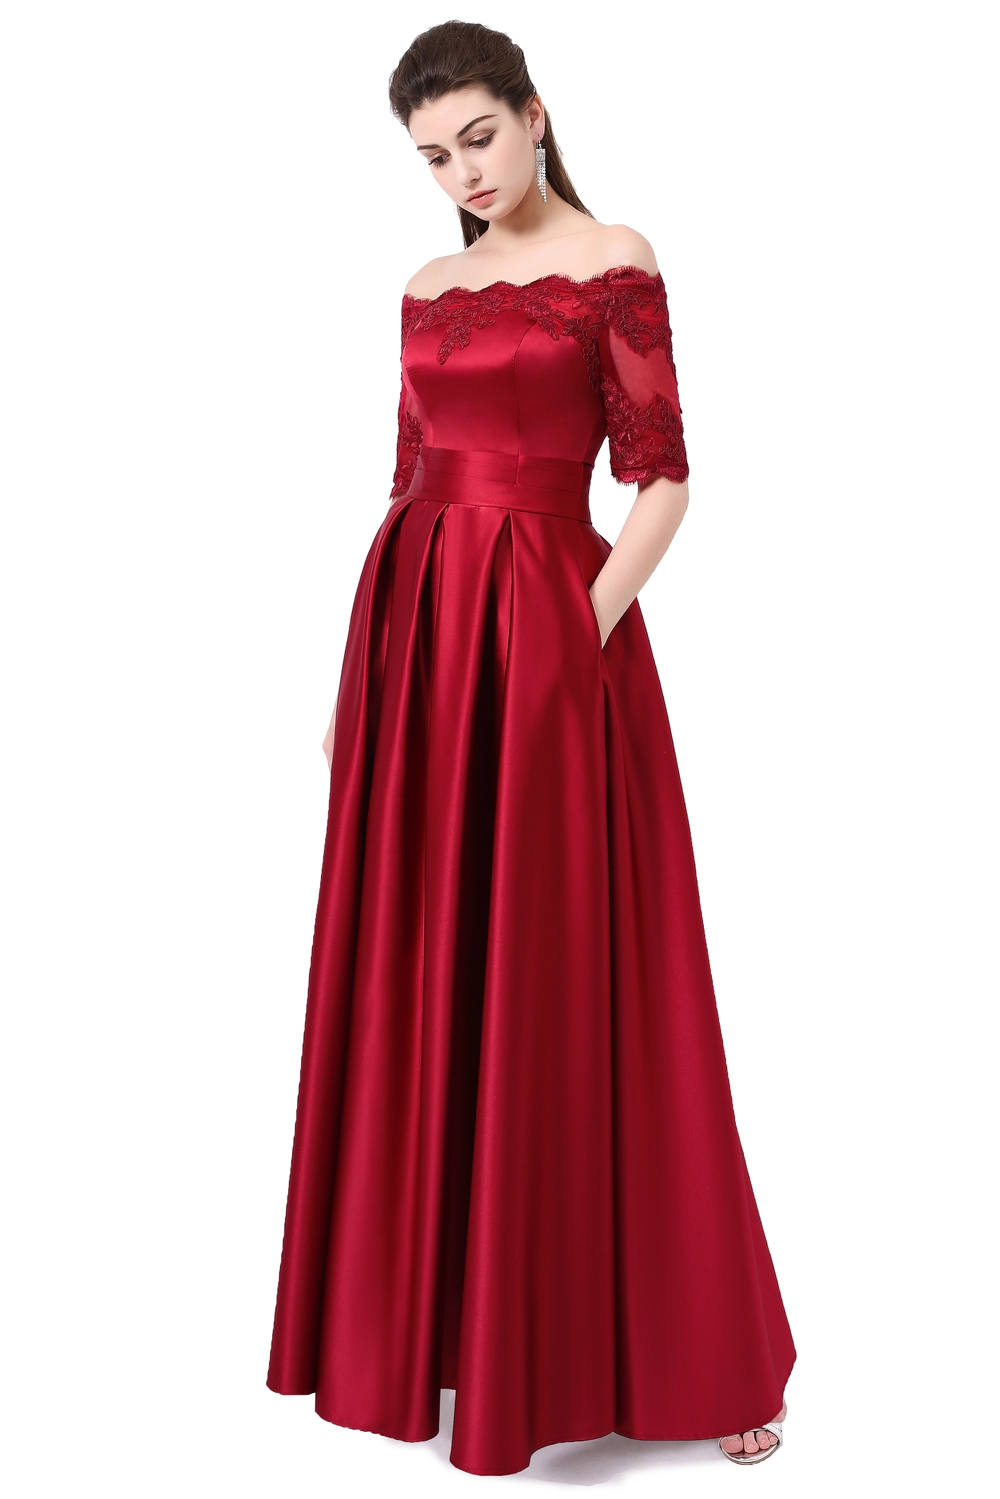 Ssyfashion 2017 Wine Red Lace Embroidery Luxury Satin Half